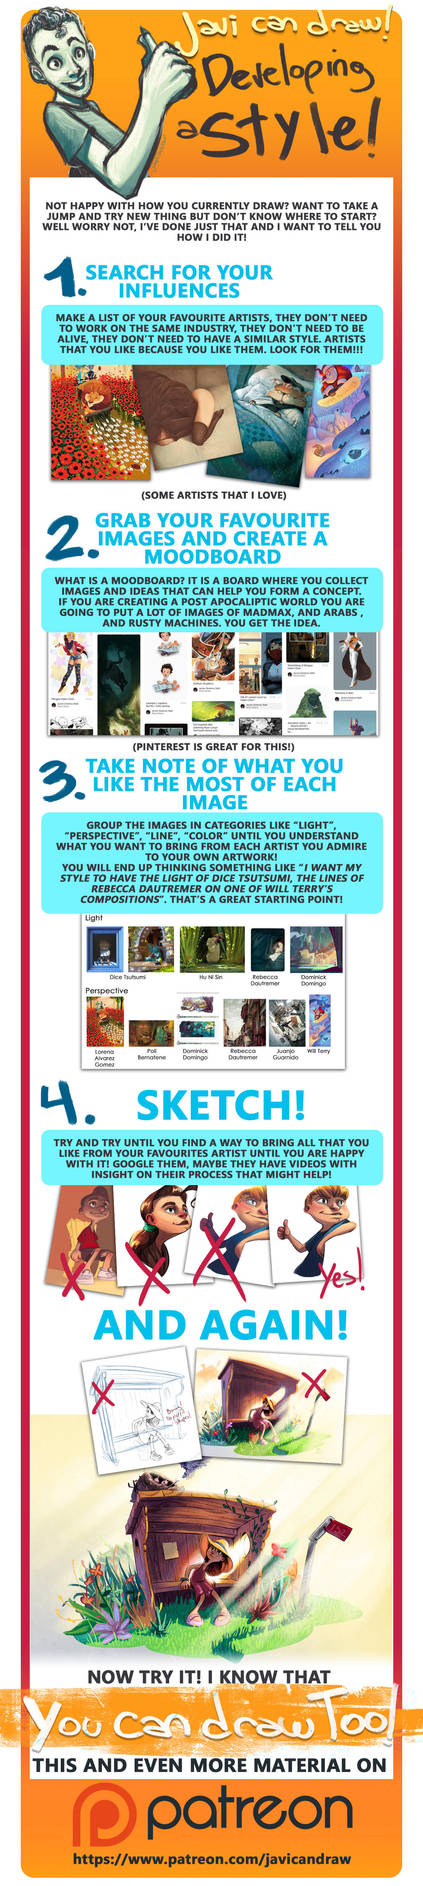 How to develop your own art style by javicandraw